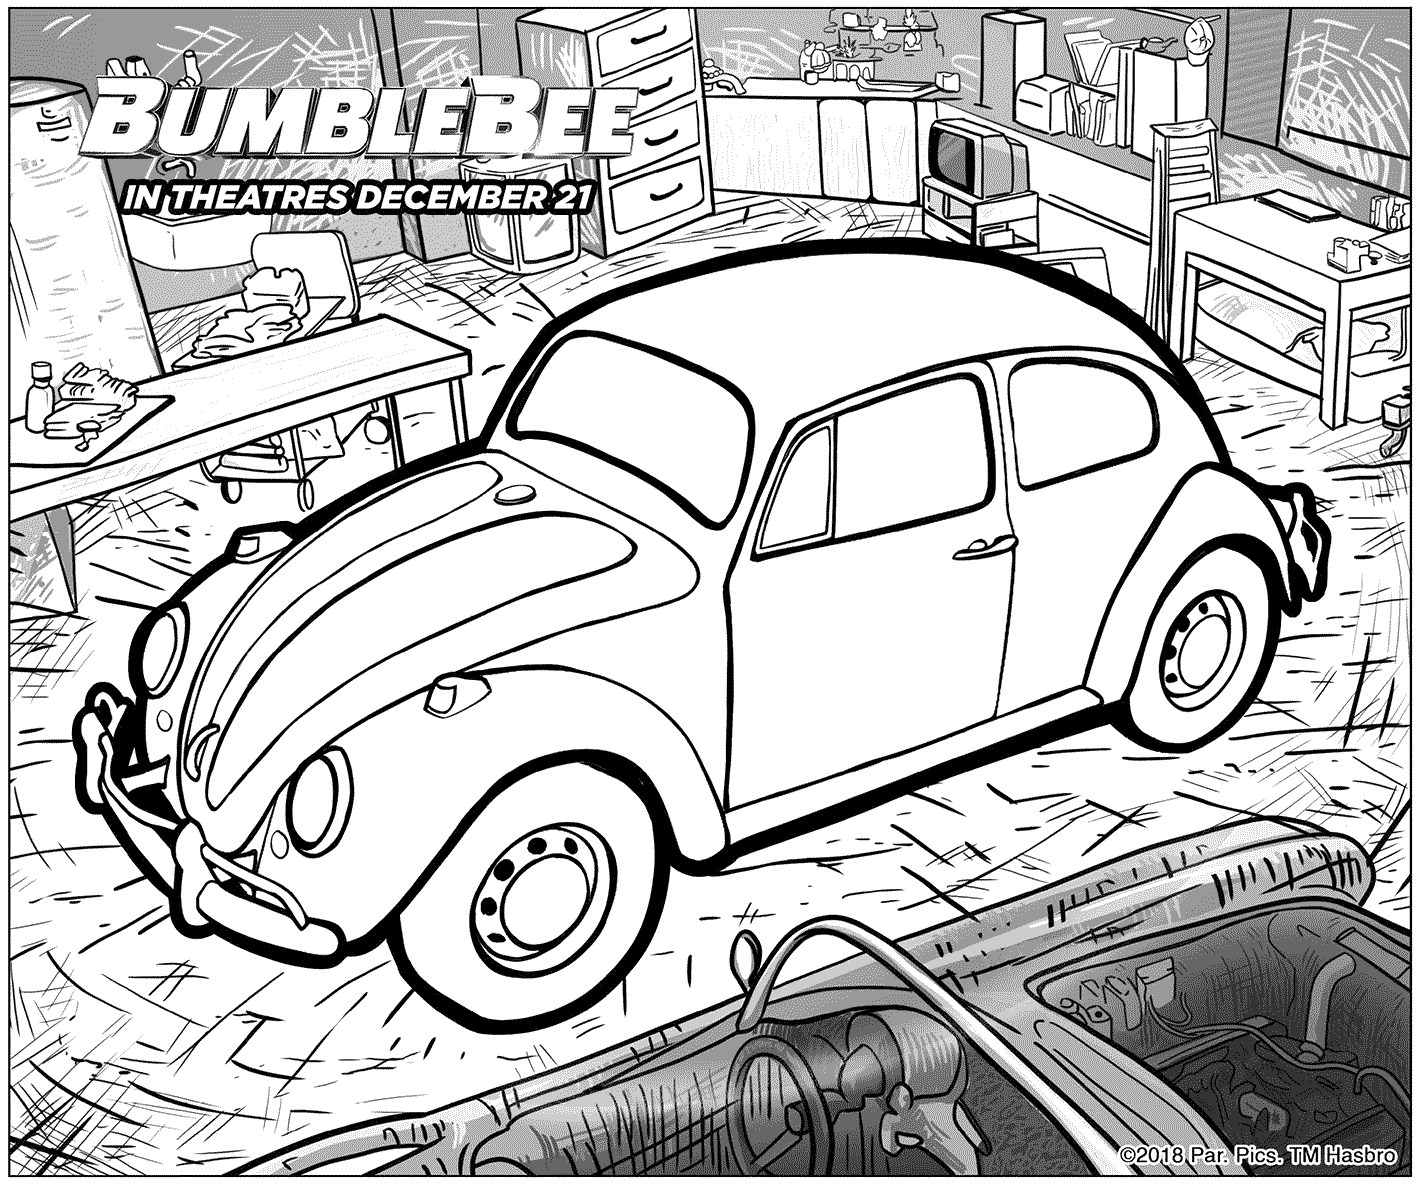 Chevrolet Camaro Bumblebee Car Coloring Pages : Best Place to ... | 1186x1420